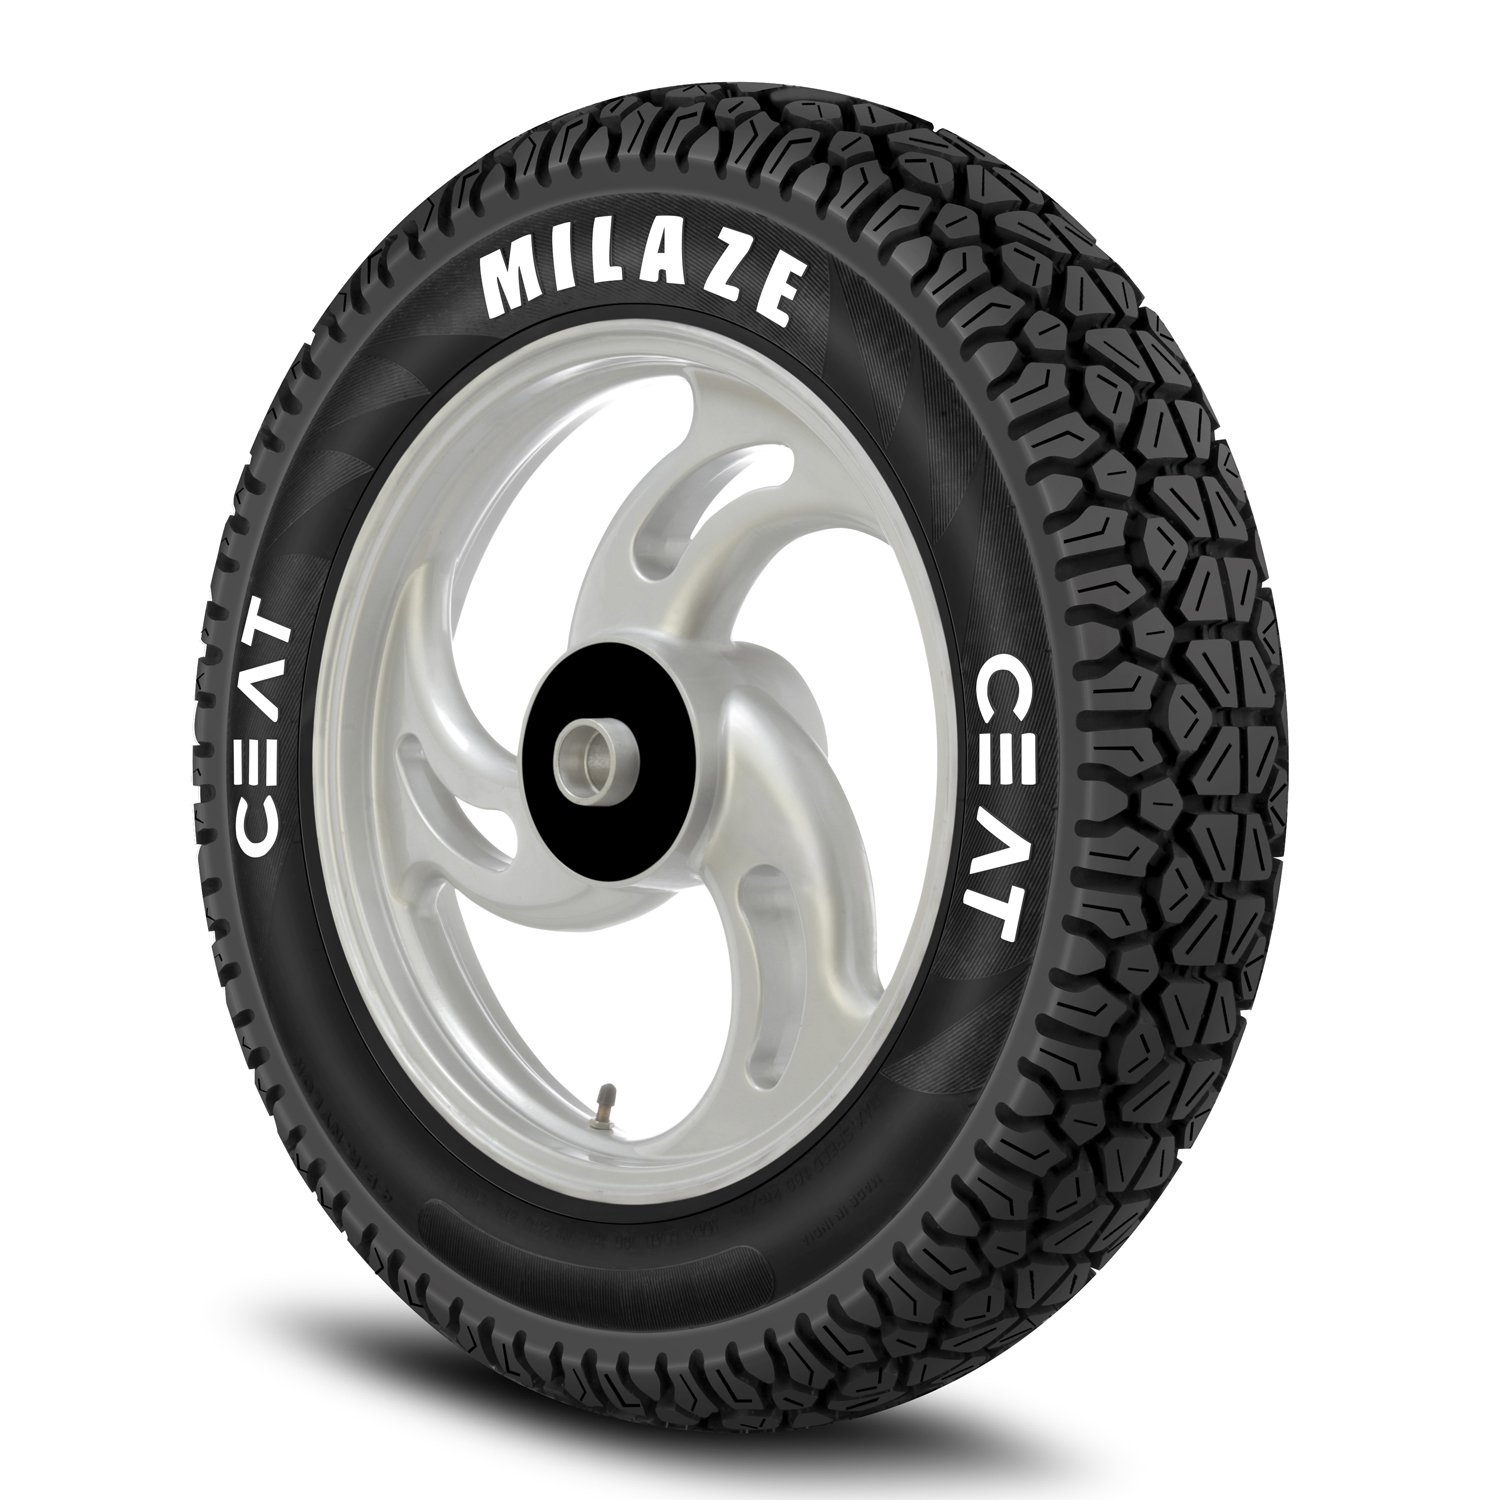 Ceat Milaze 90 100 10 53J Tubeless Scooter Tyre Front or Rear Home